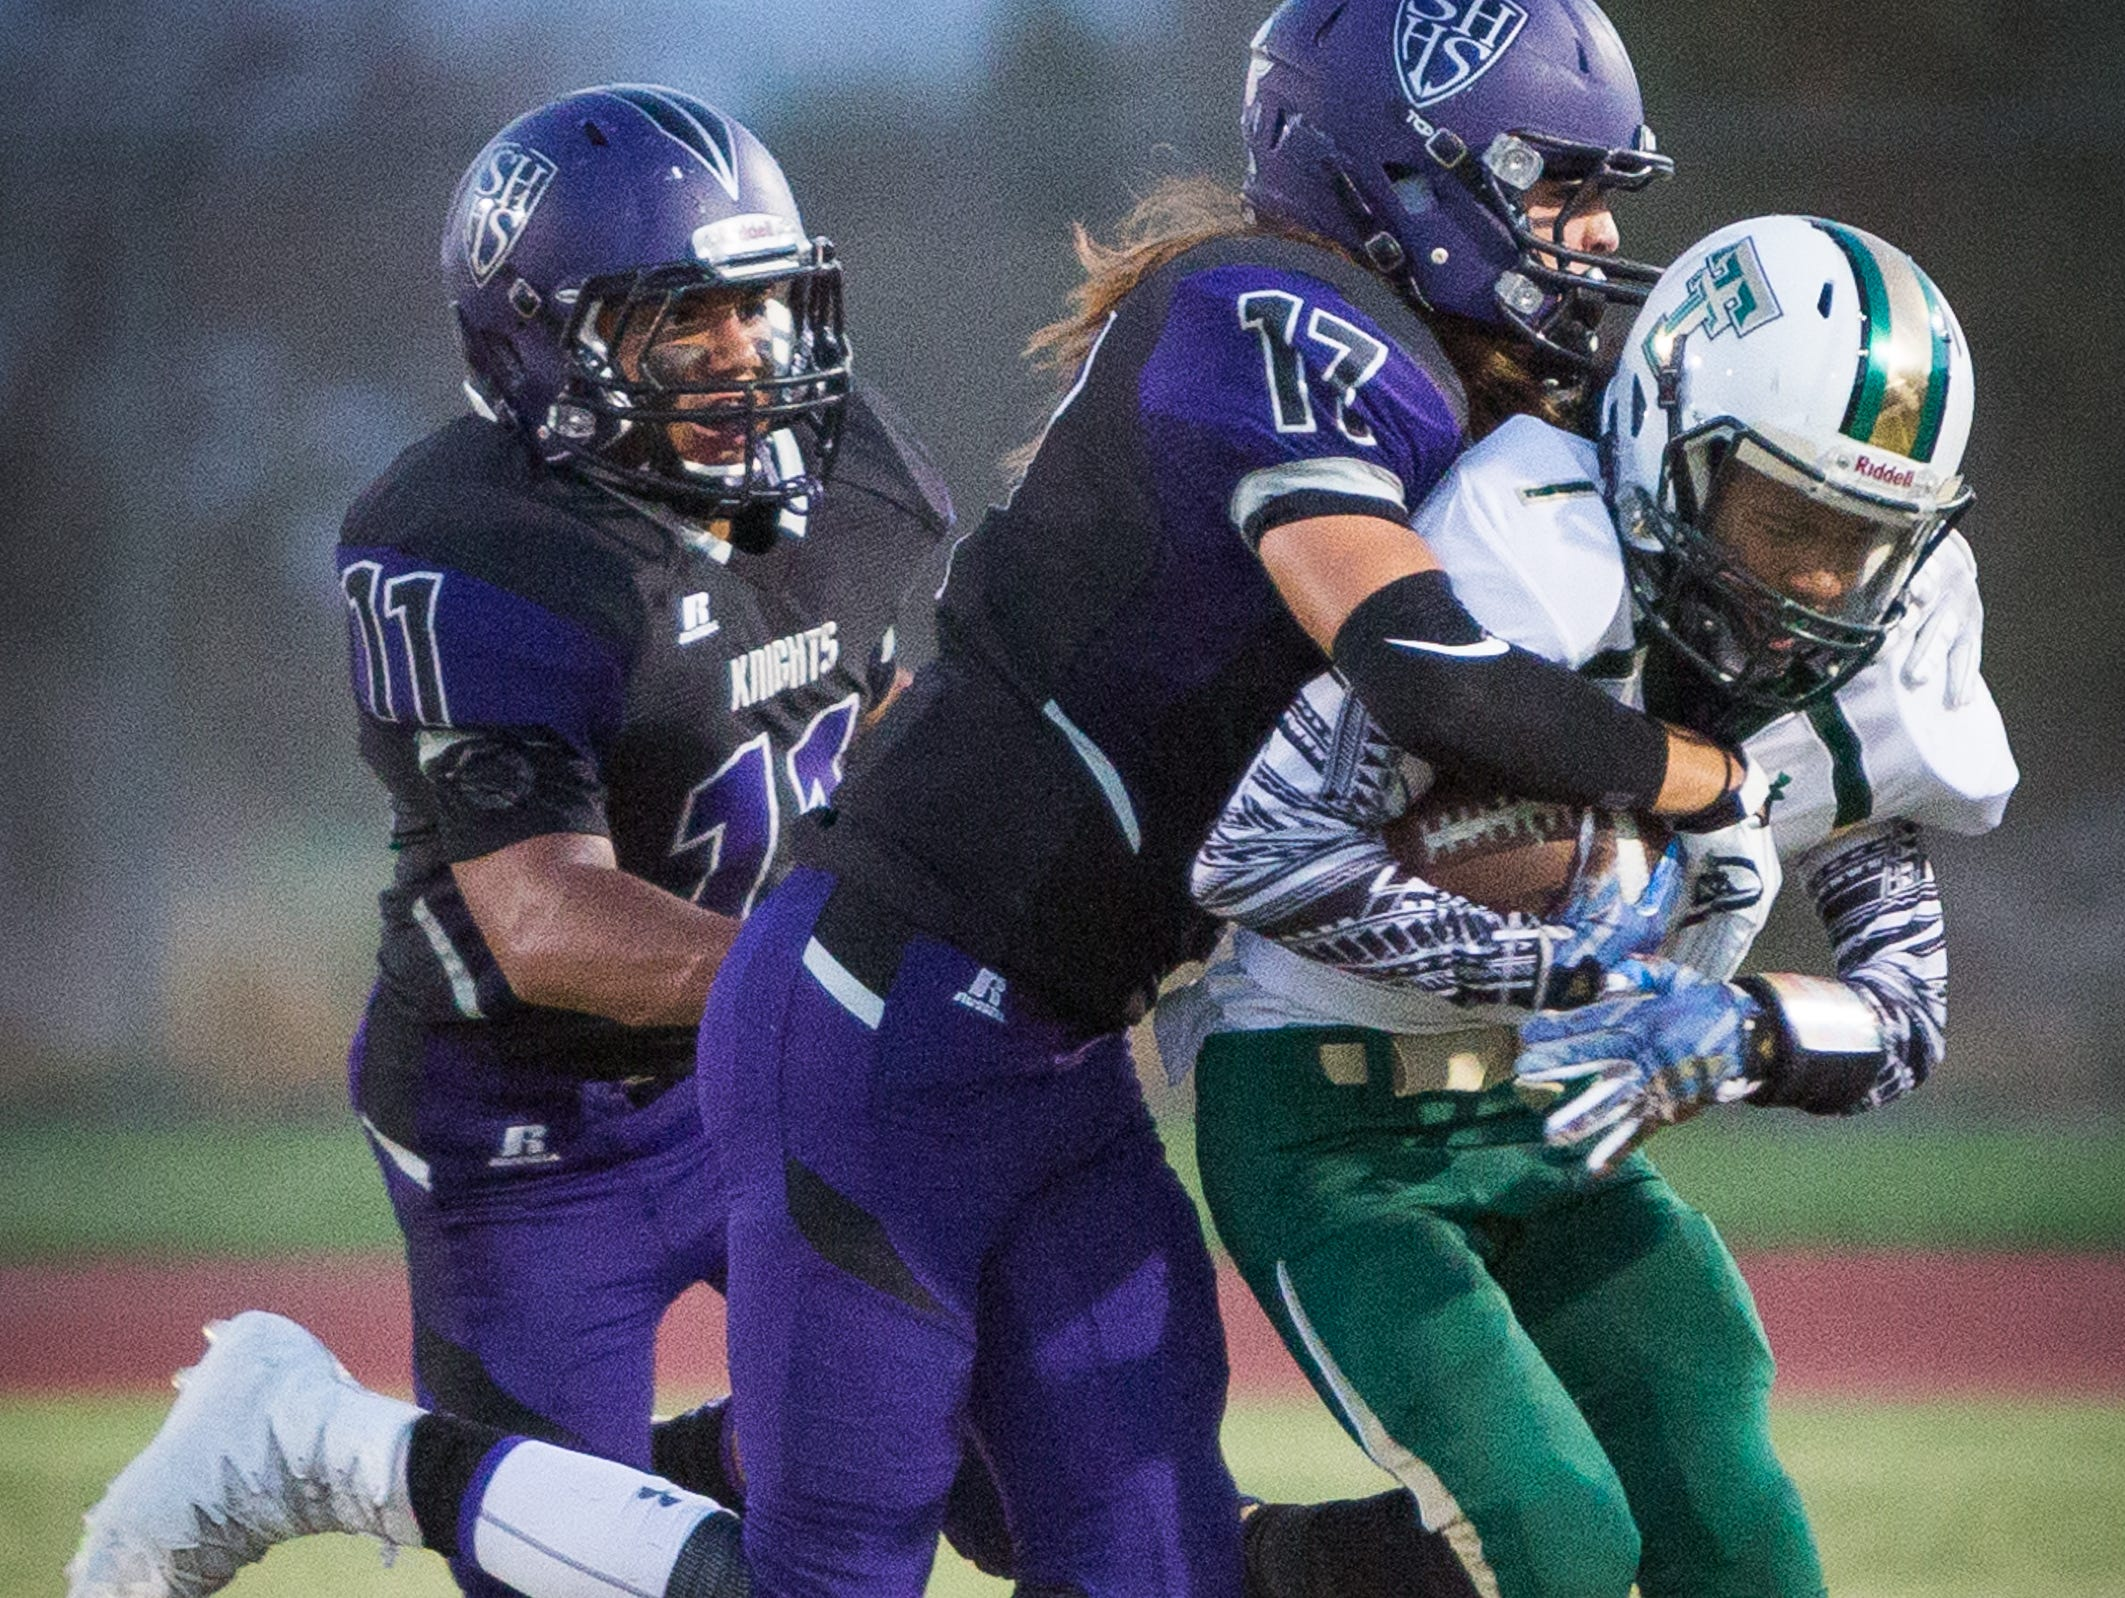 Jason Lang (#17) stops Tyree Chaisson (#7) during the Tahquitz High School vs Shadow Hills High school football game.